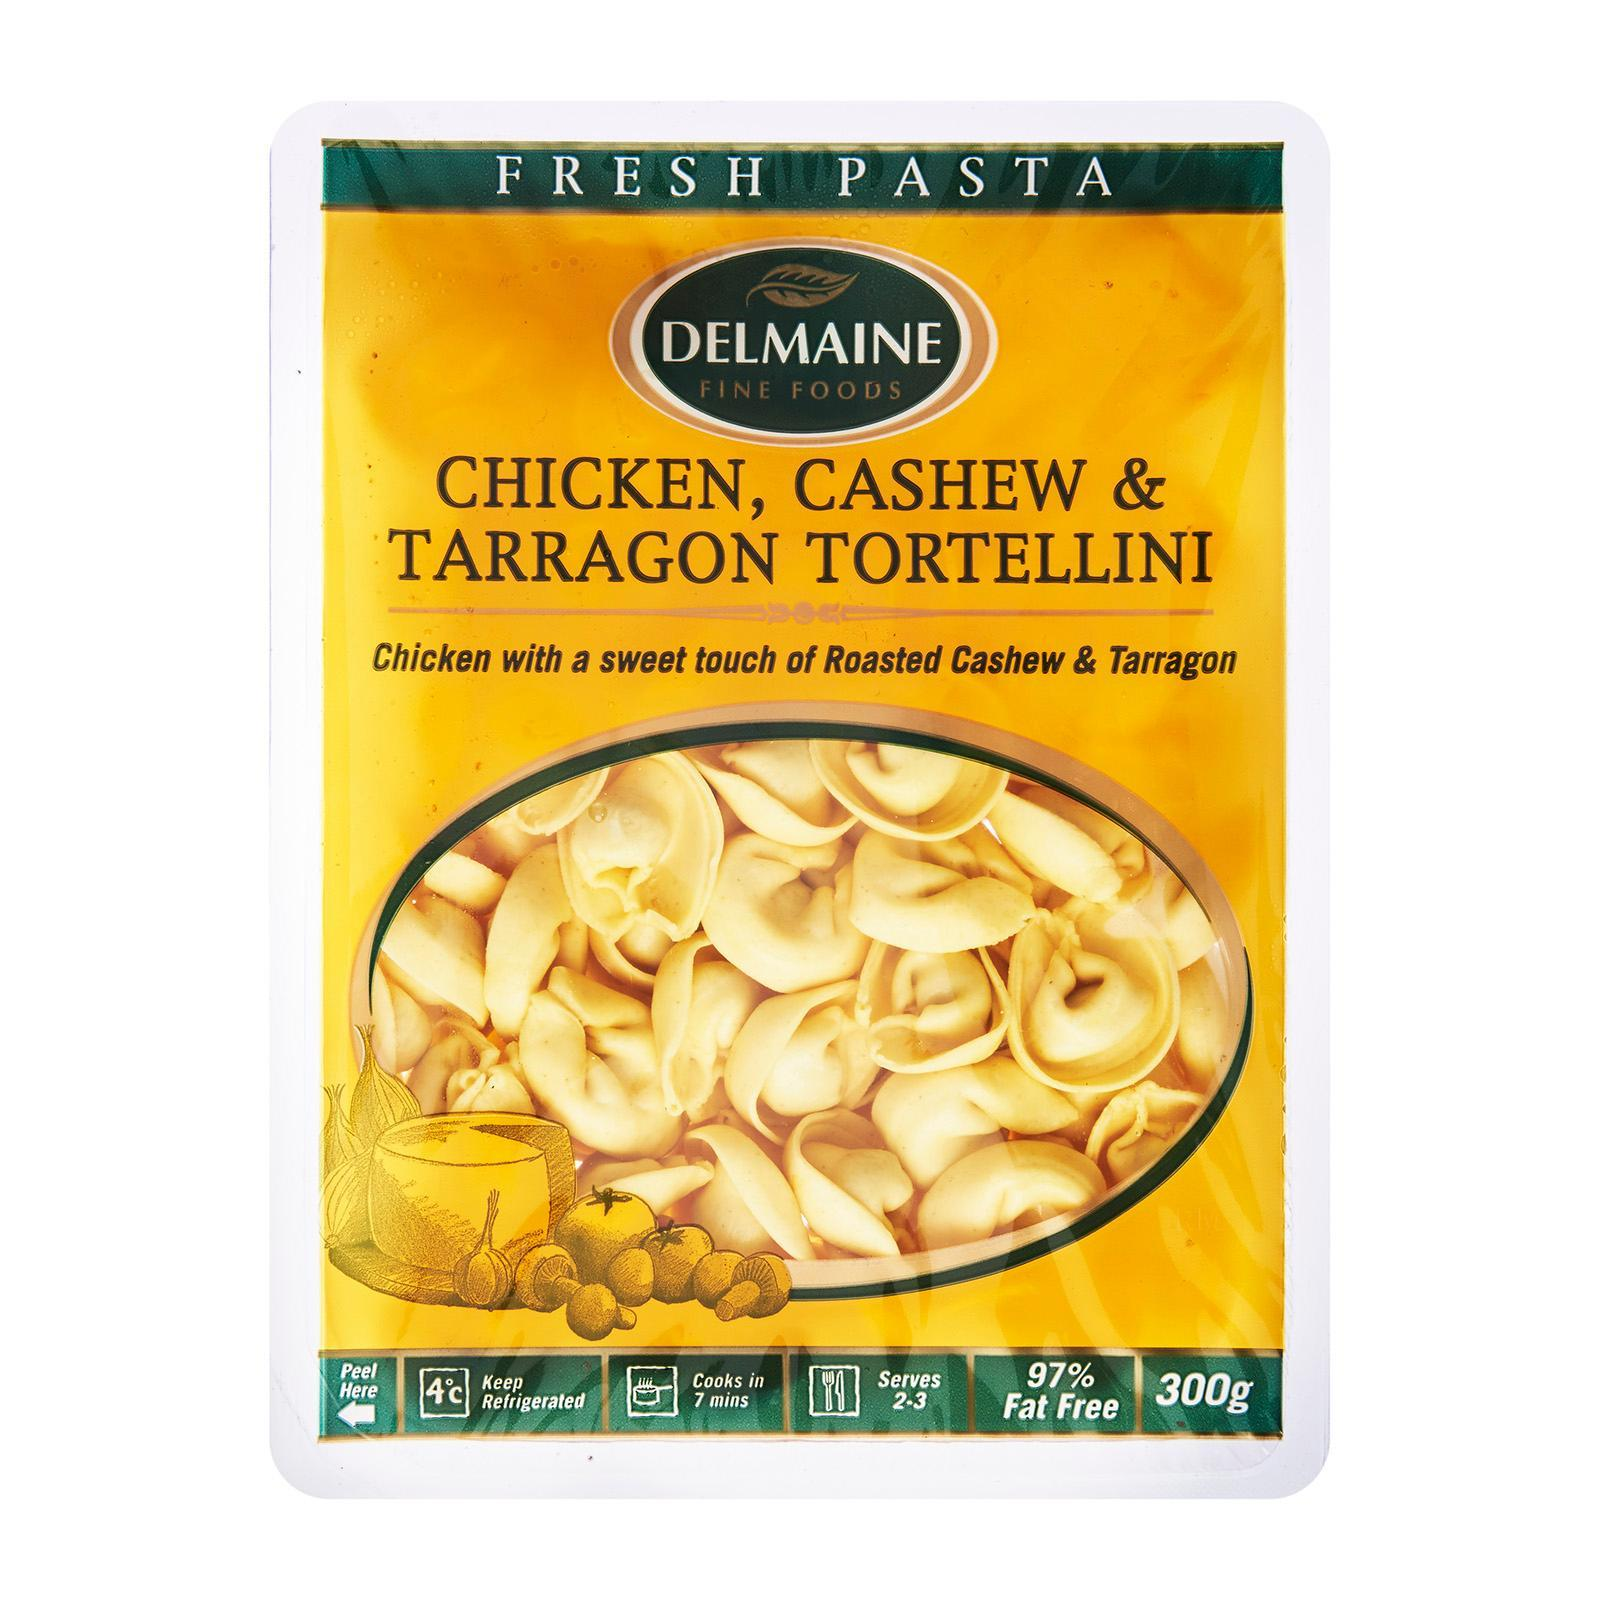 Delmaine Chicken/cashew And Tarragon Tortellini Filled Pasta By Redmart.